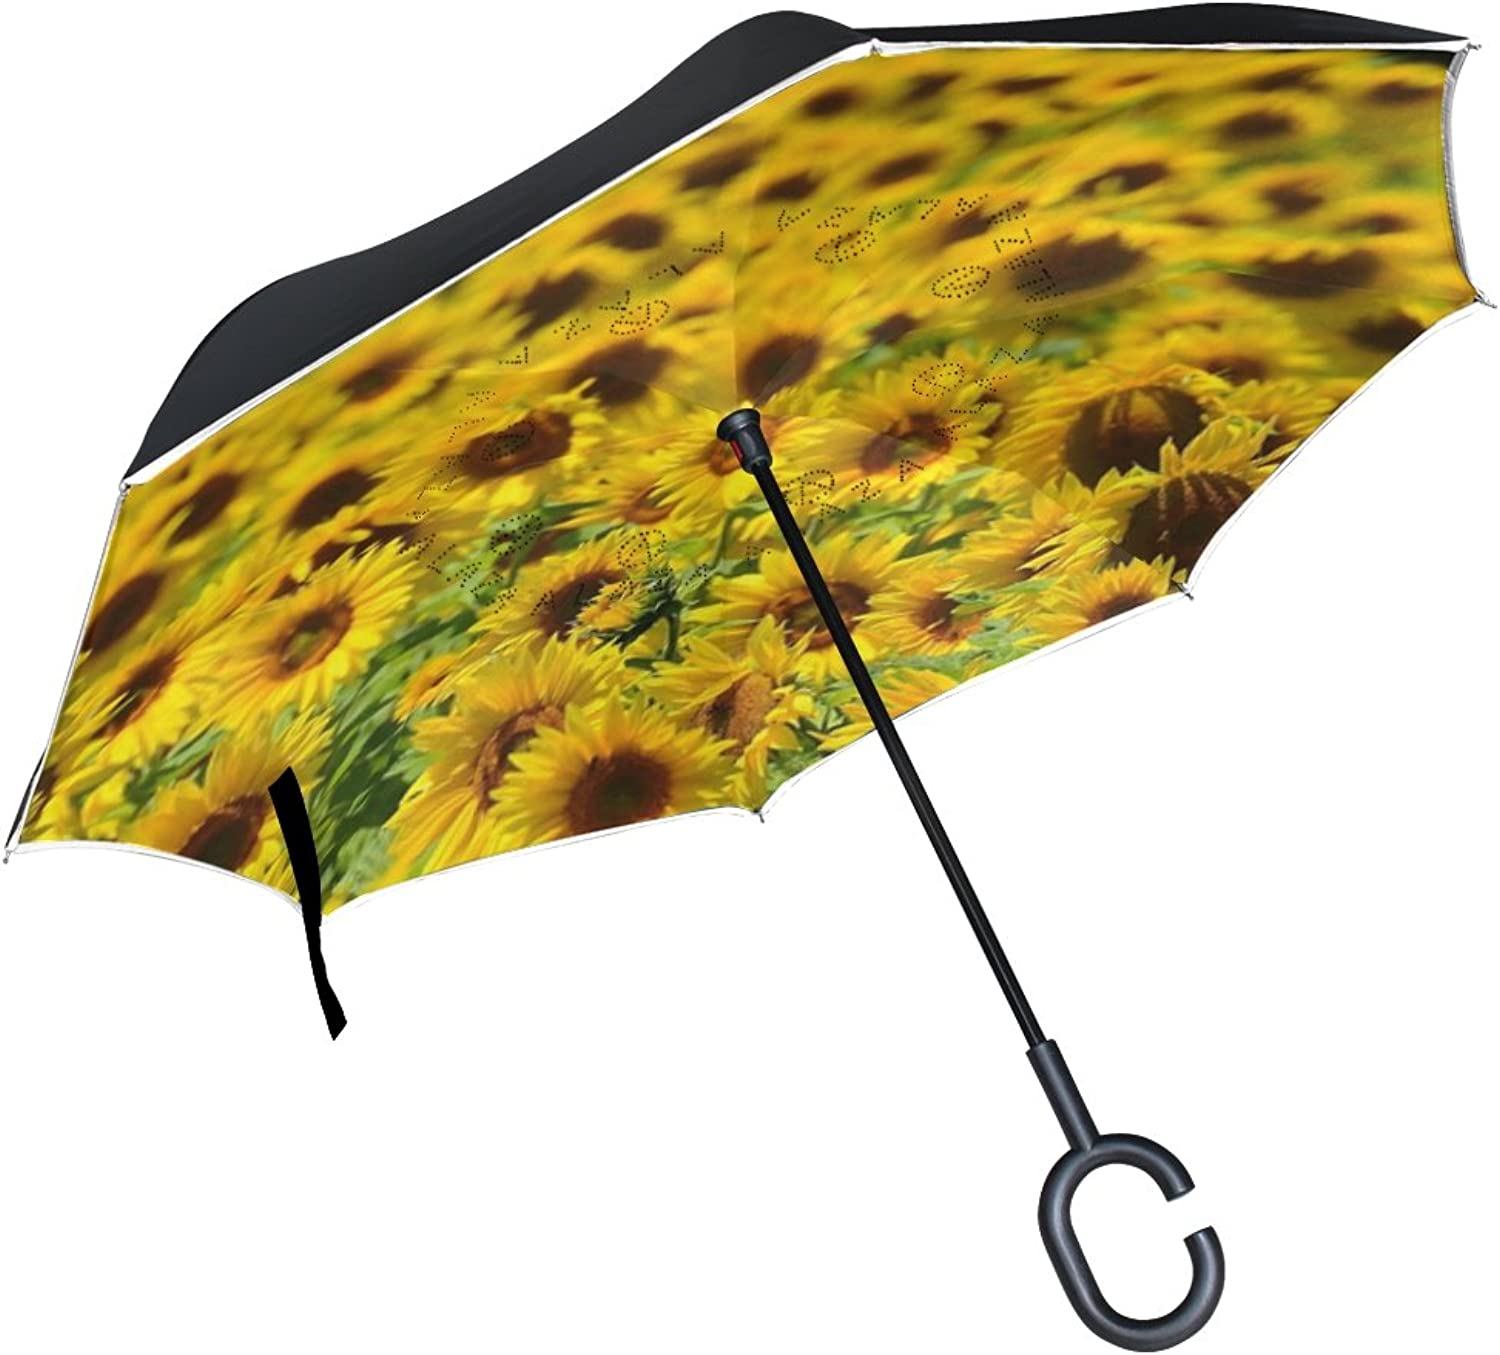 OREZI Double Layer Ingreened Umbrellas Reverse Folding Umbrella Windproof Predection Big Straight Umbrella for Car Rain Outdoor with CShaped Handle,Sunflower Field Umbrella for Women and Men